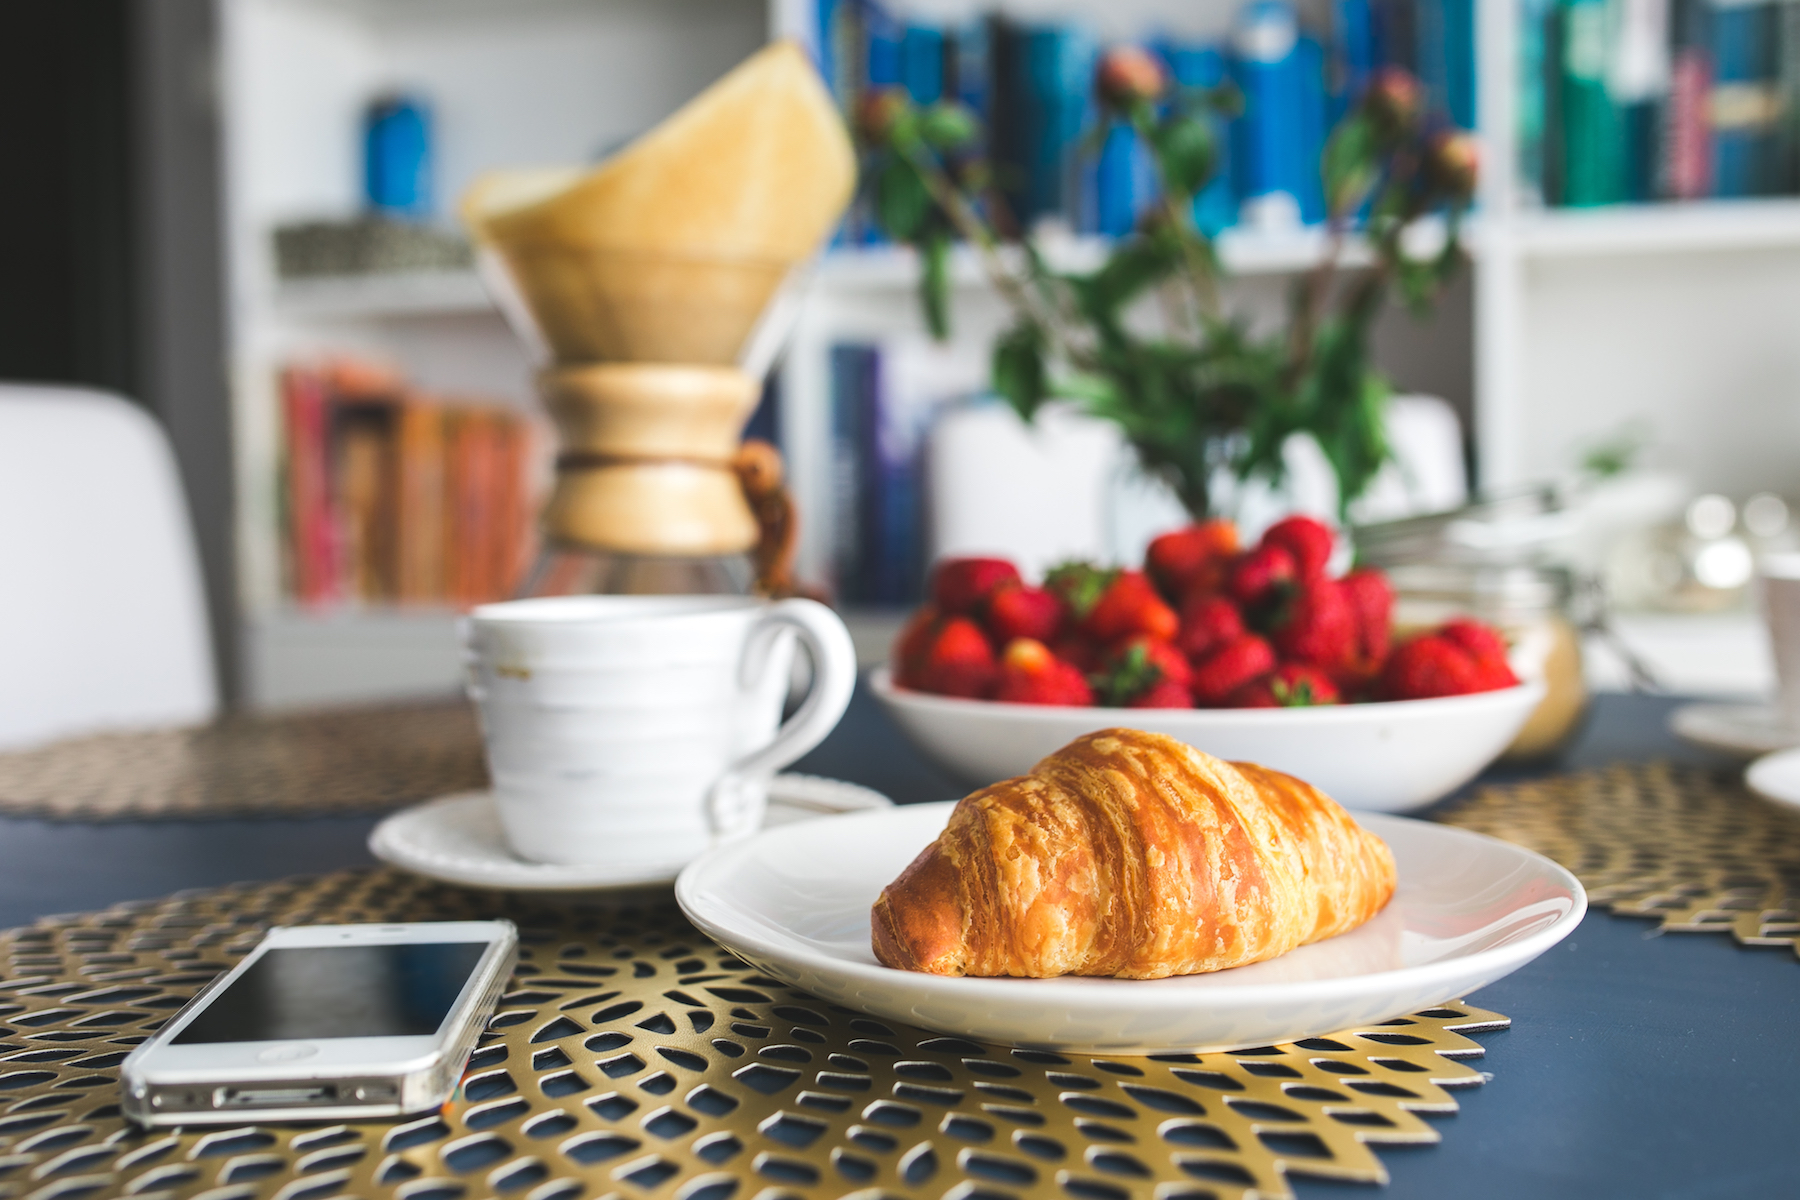 5 Easy Ways To Upgrade Your Morning Routine